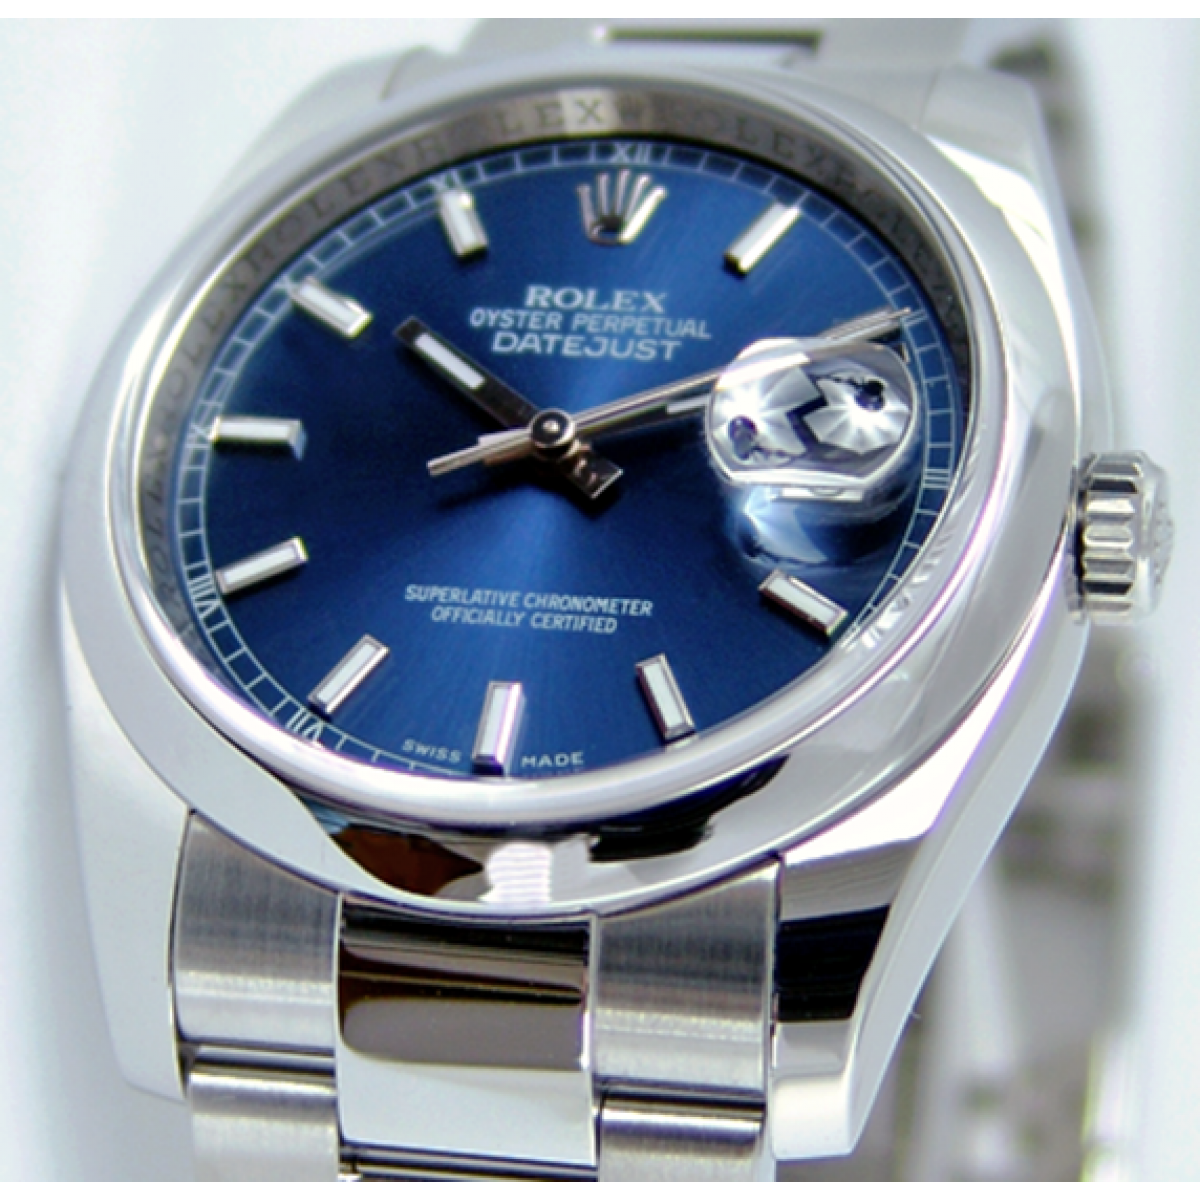 rolex-datejust-steel-blue-bold-index-dial-116200-rehaut-oyster-watch-chest-g2.png